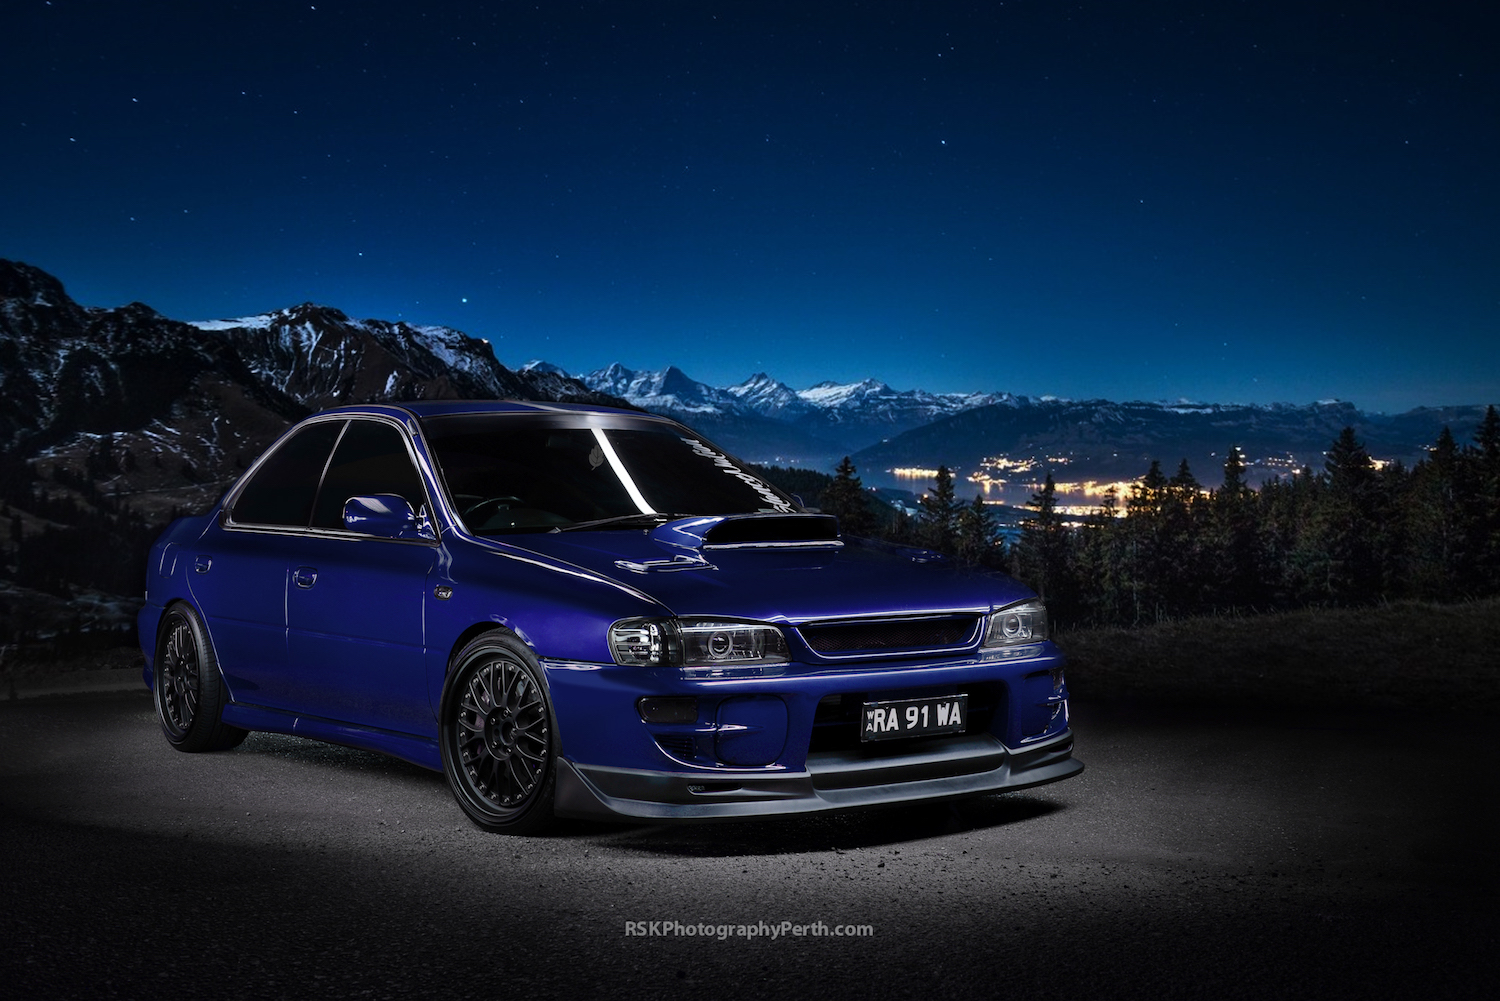 RSK_Photography_Perth_car_motorcycle_photographer_Subaru_WRX_car_photo1.jpg